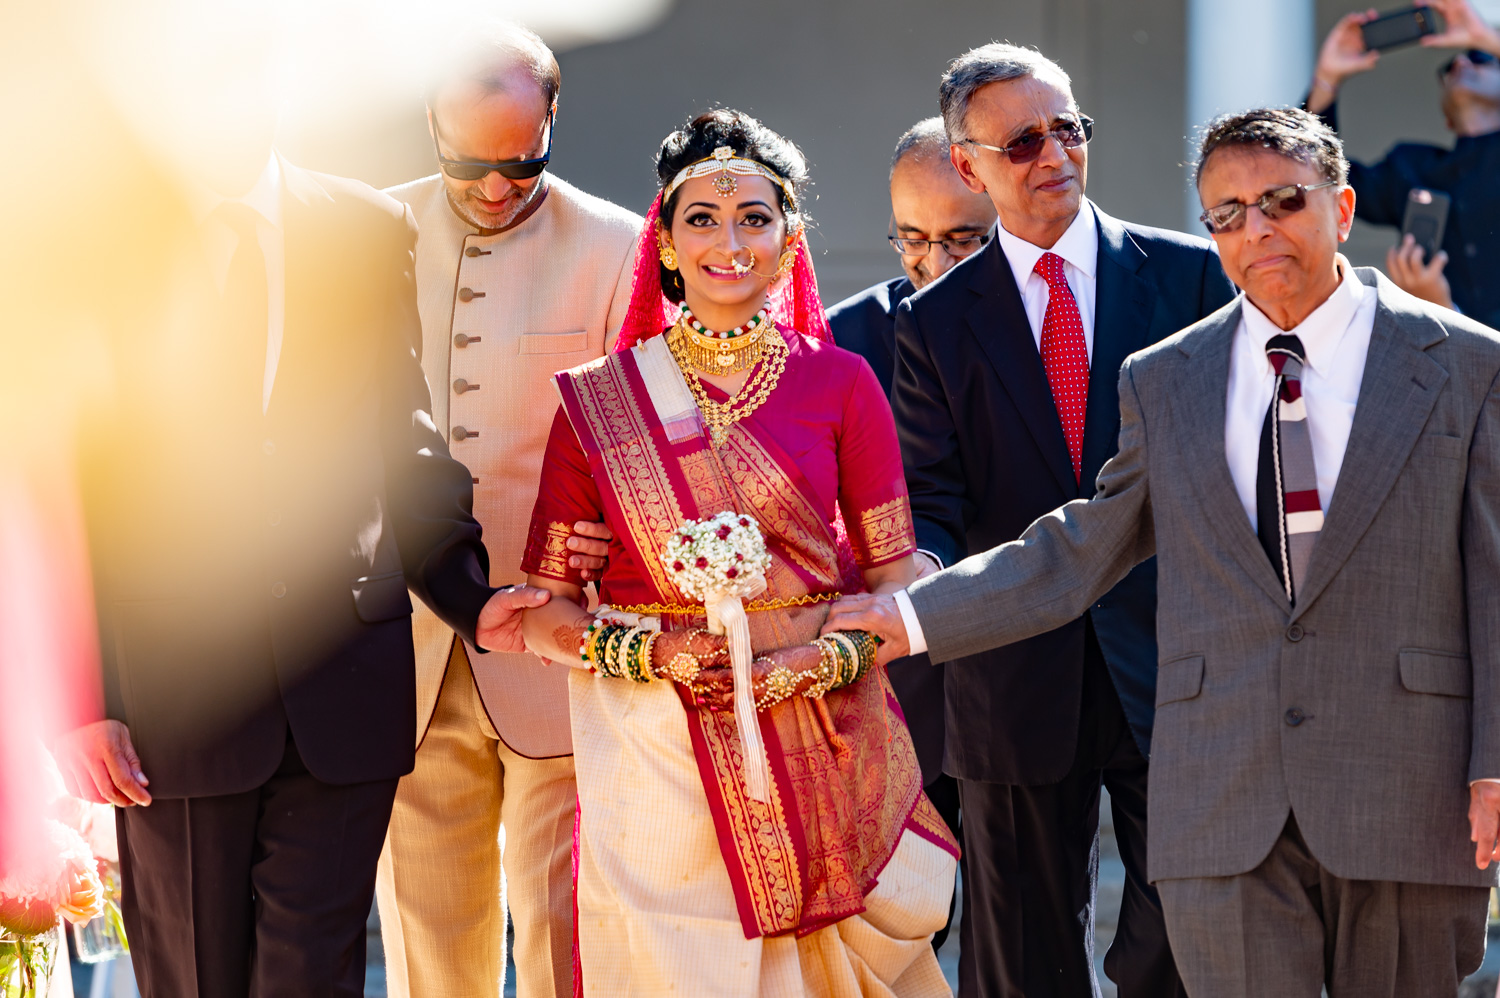 Bay area Indian wedding photography